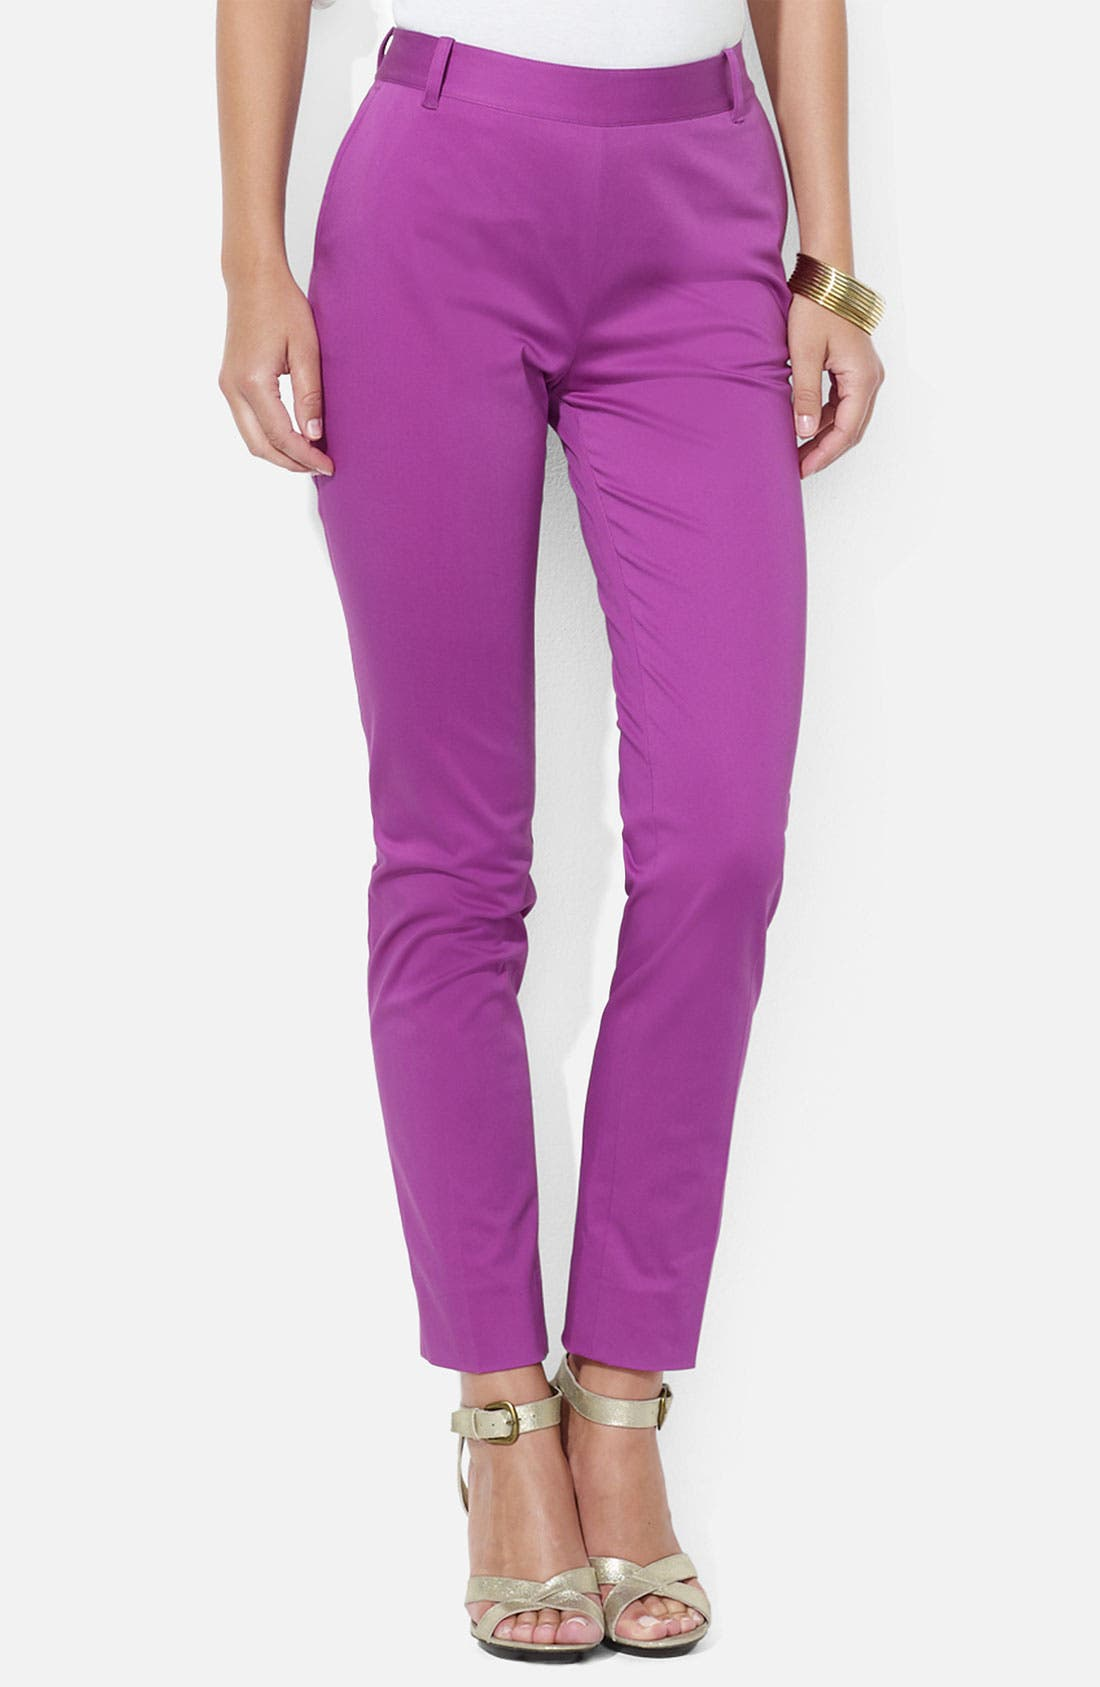 Alternate Image 1 Selected - Lauren Ralph Lauren Stretch Cotton Ankle Pants (Petite)